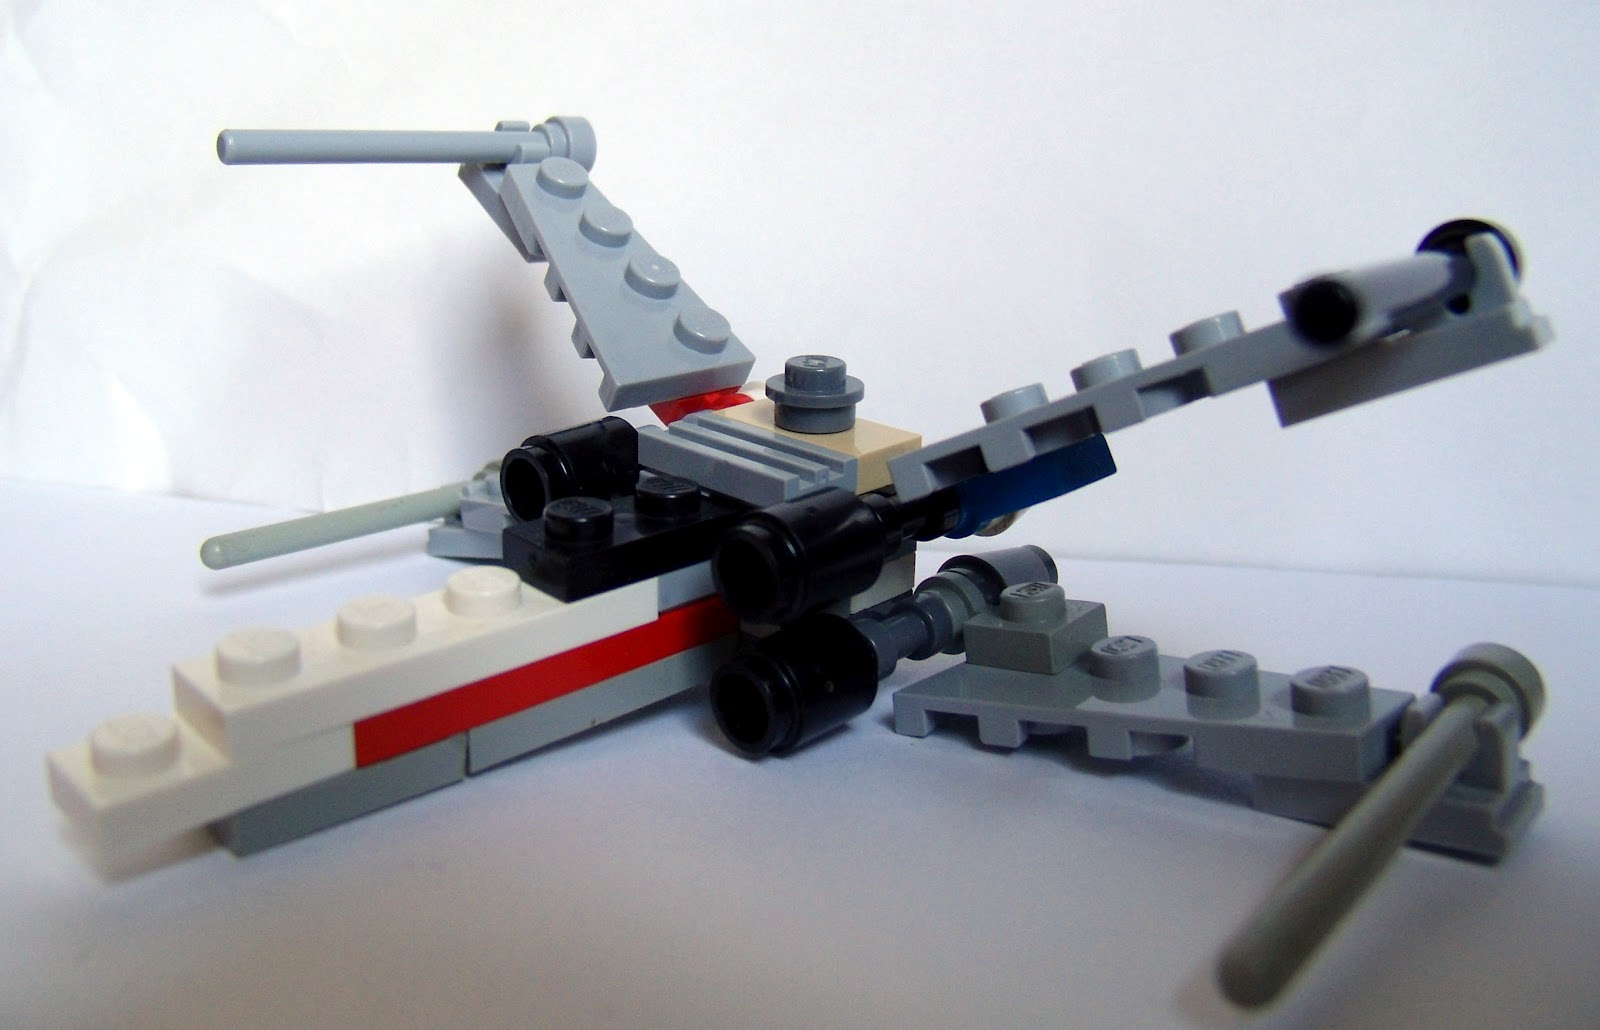 Save Money On Lego Heres How To Build More Kits With What You